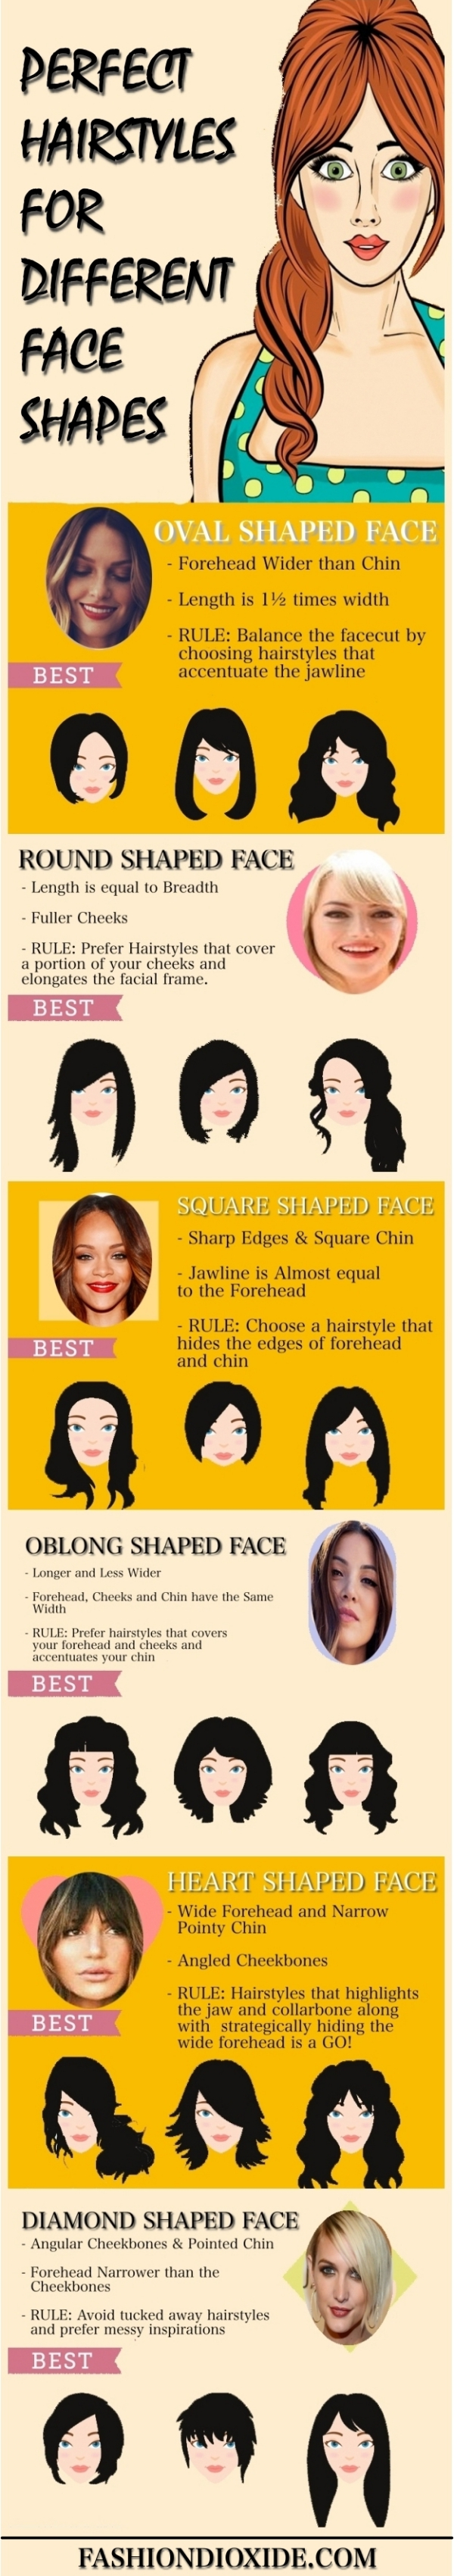 Perfect-Hairstyles-for-Different-Face-Shapes